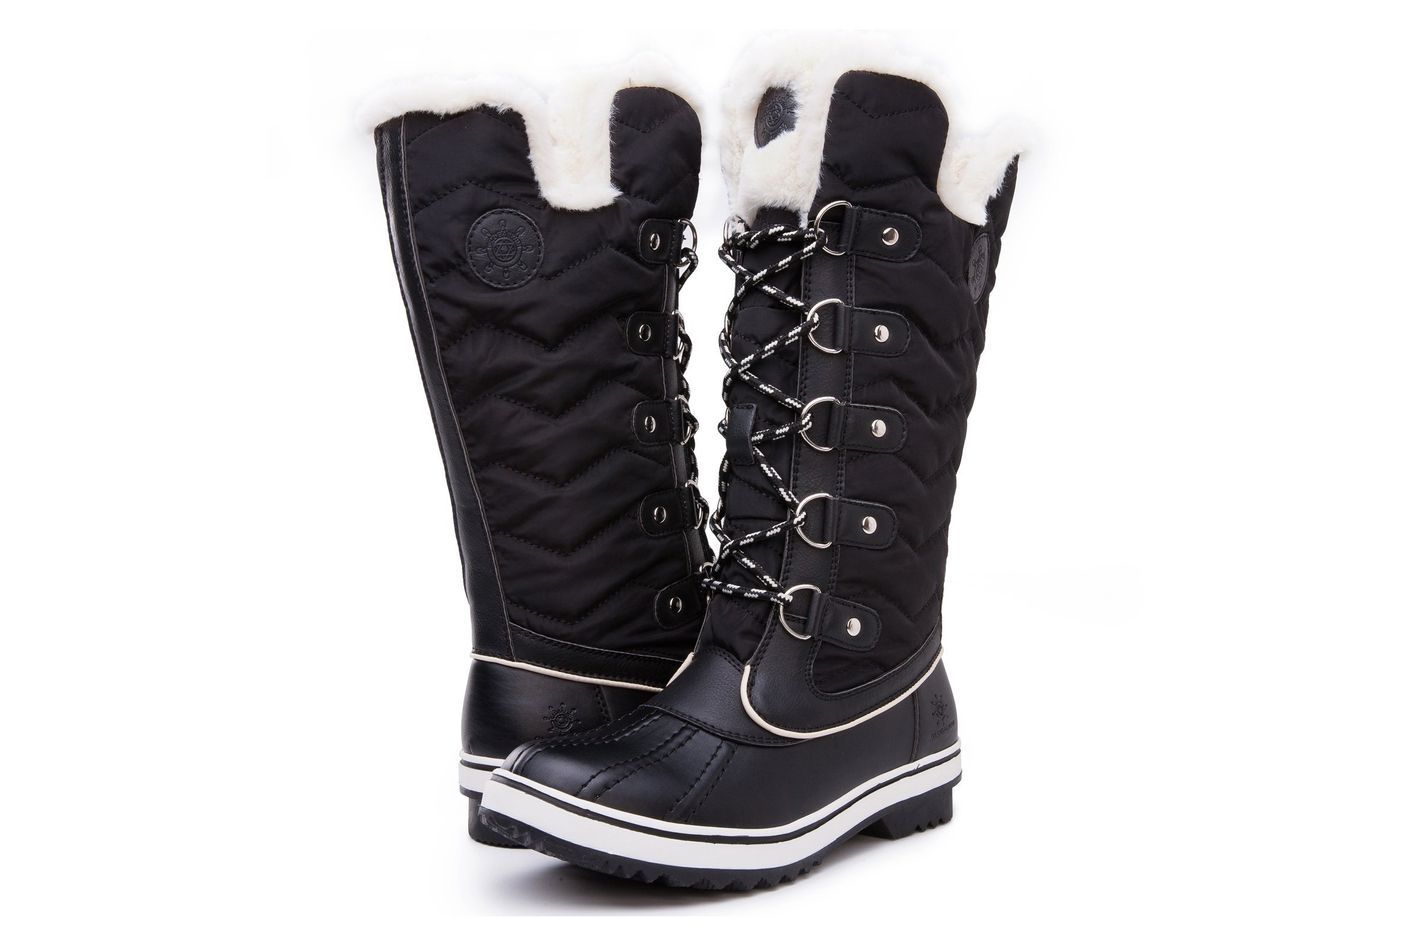 6c7ca94a66b Kingshow Women s Global Win Waterproof Winter Boots